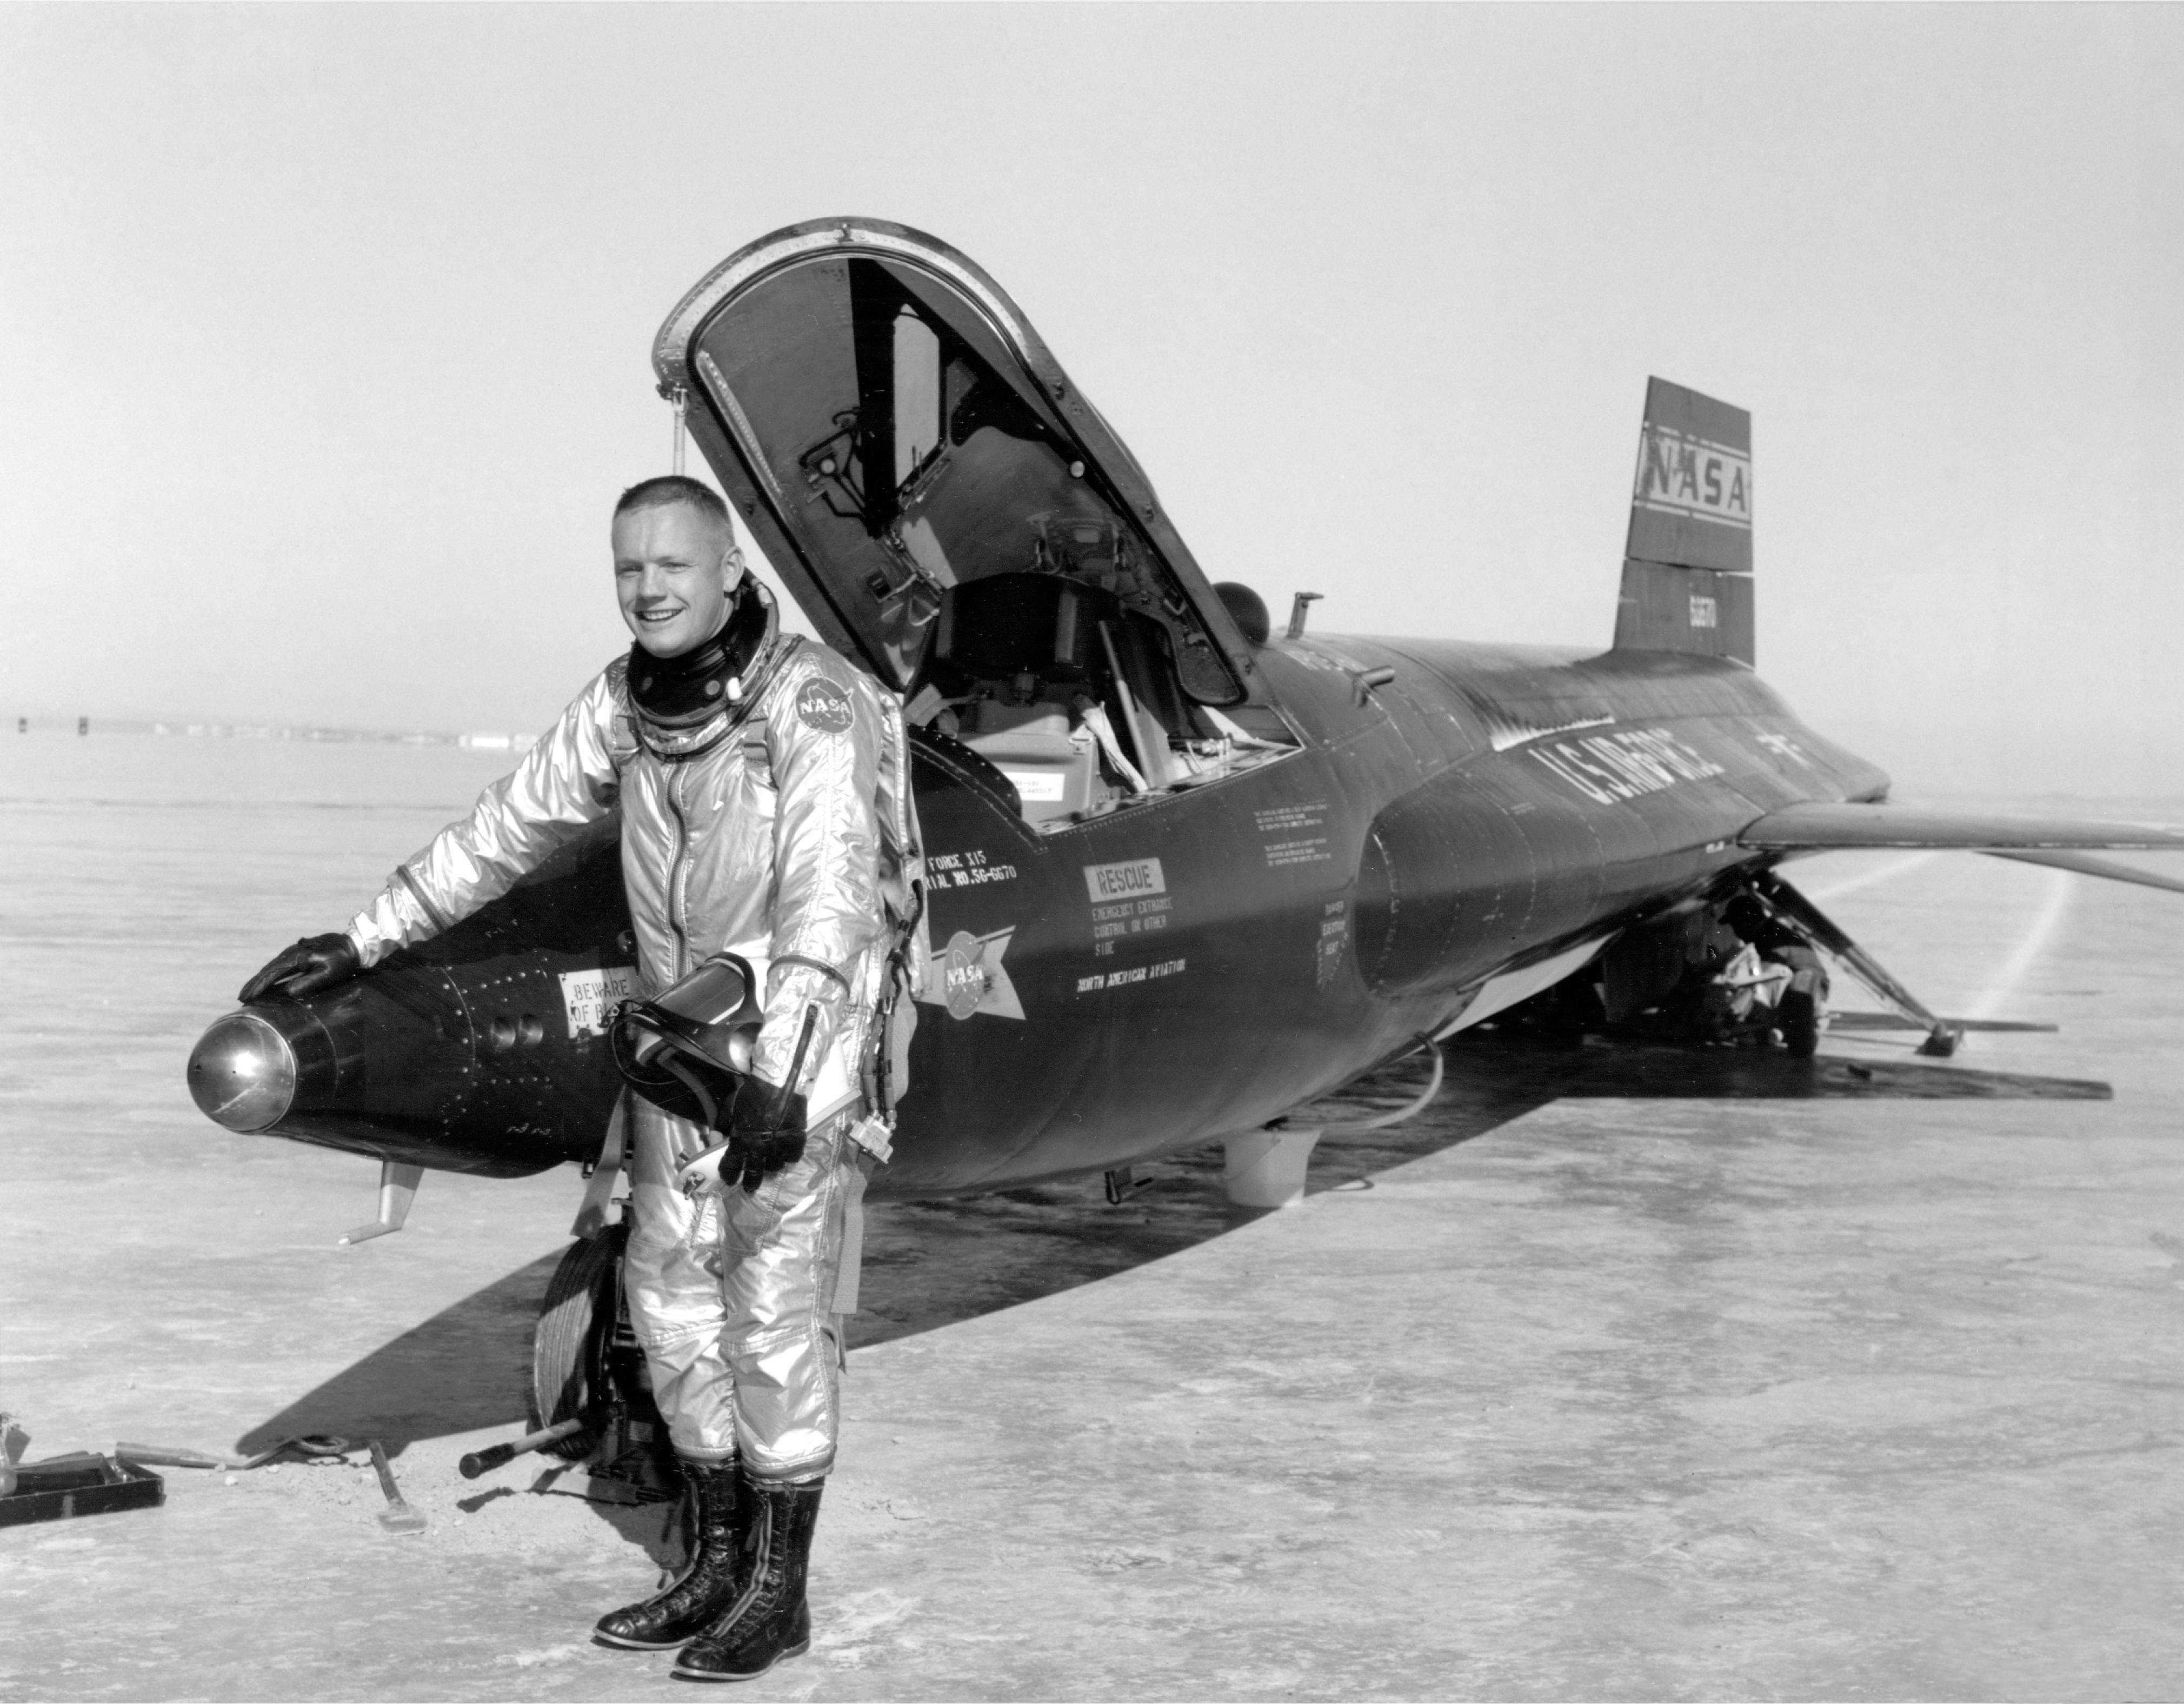 Neil_Armstrong_and_X-15_-1_-_GPN-2000-000121